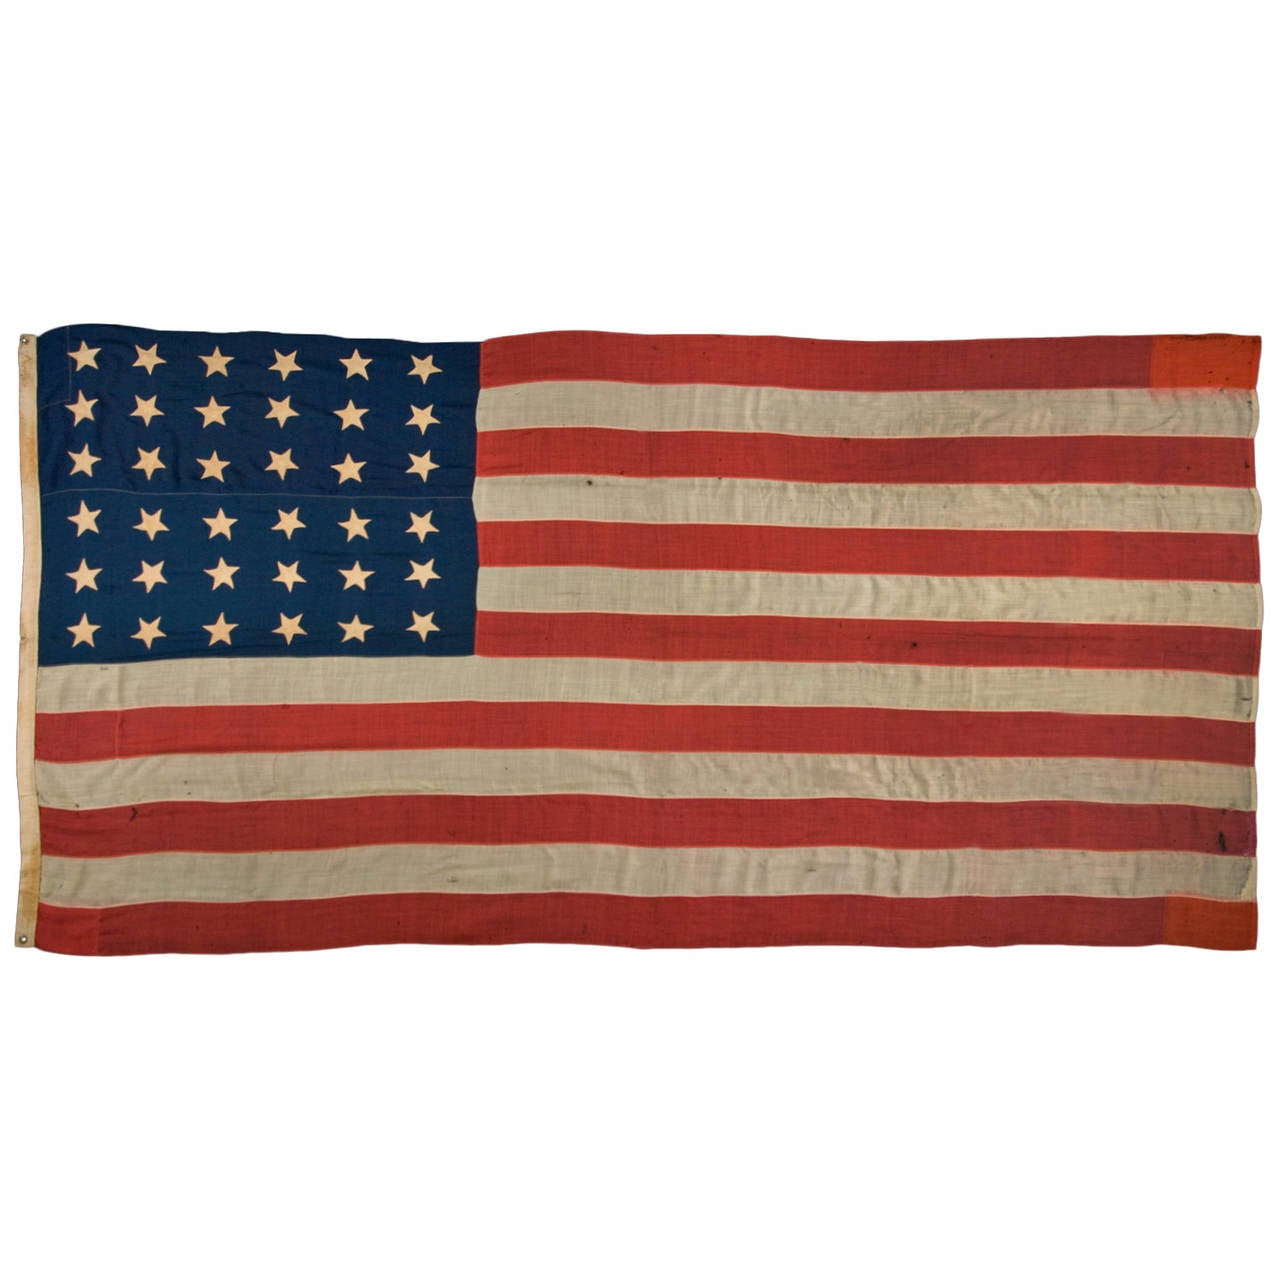 "36 Star Single-Appliqued Flag, Signed ""Christy"" 1"